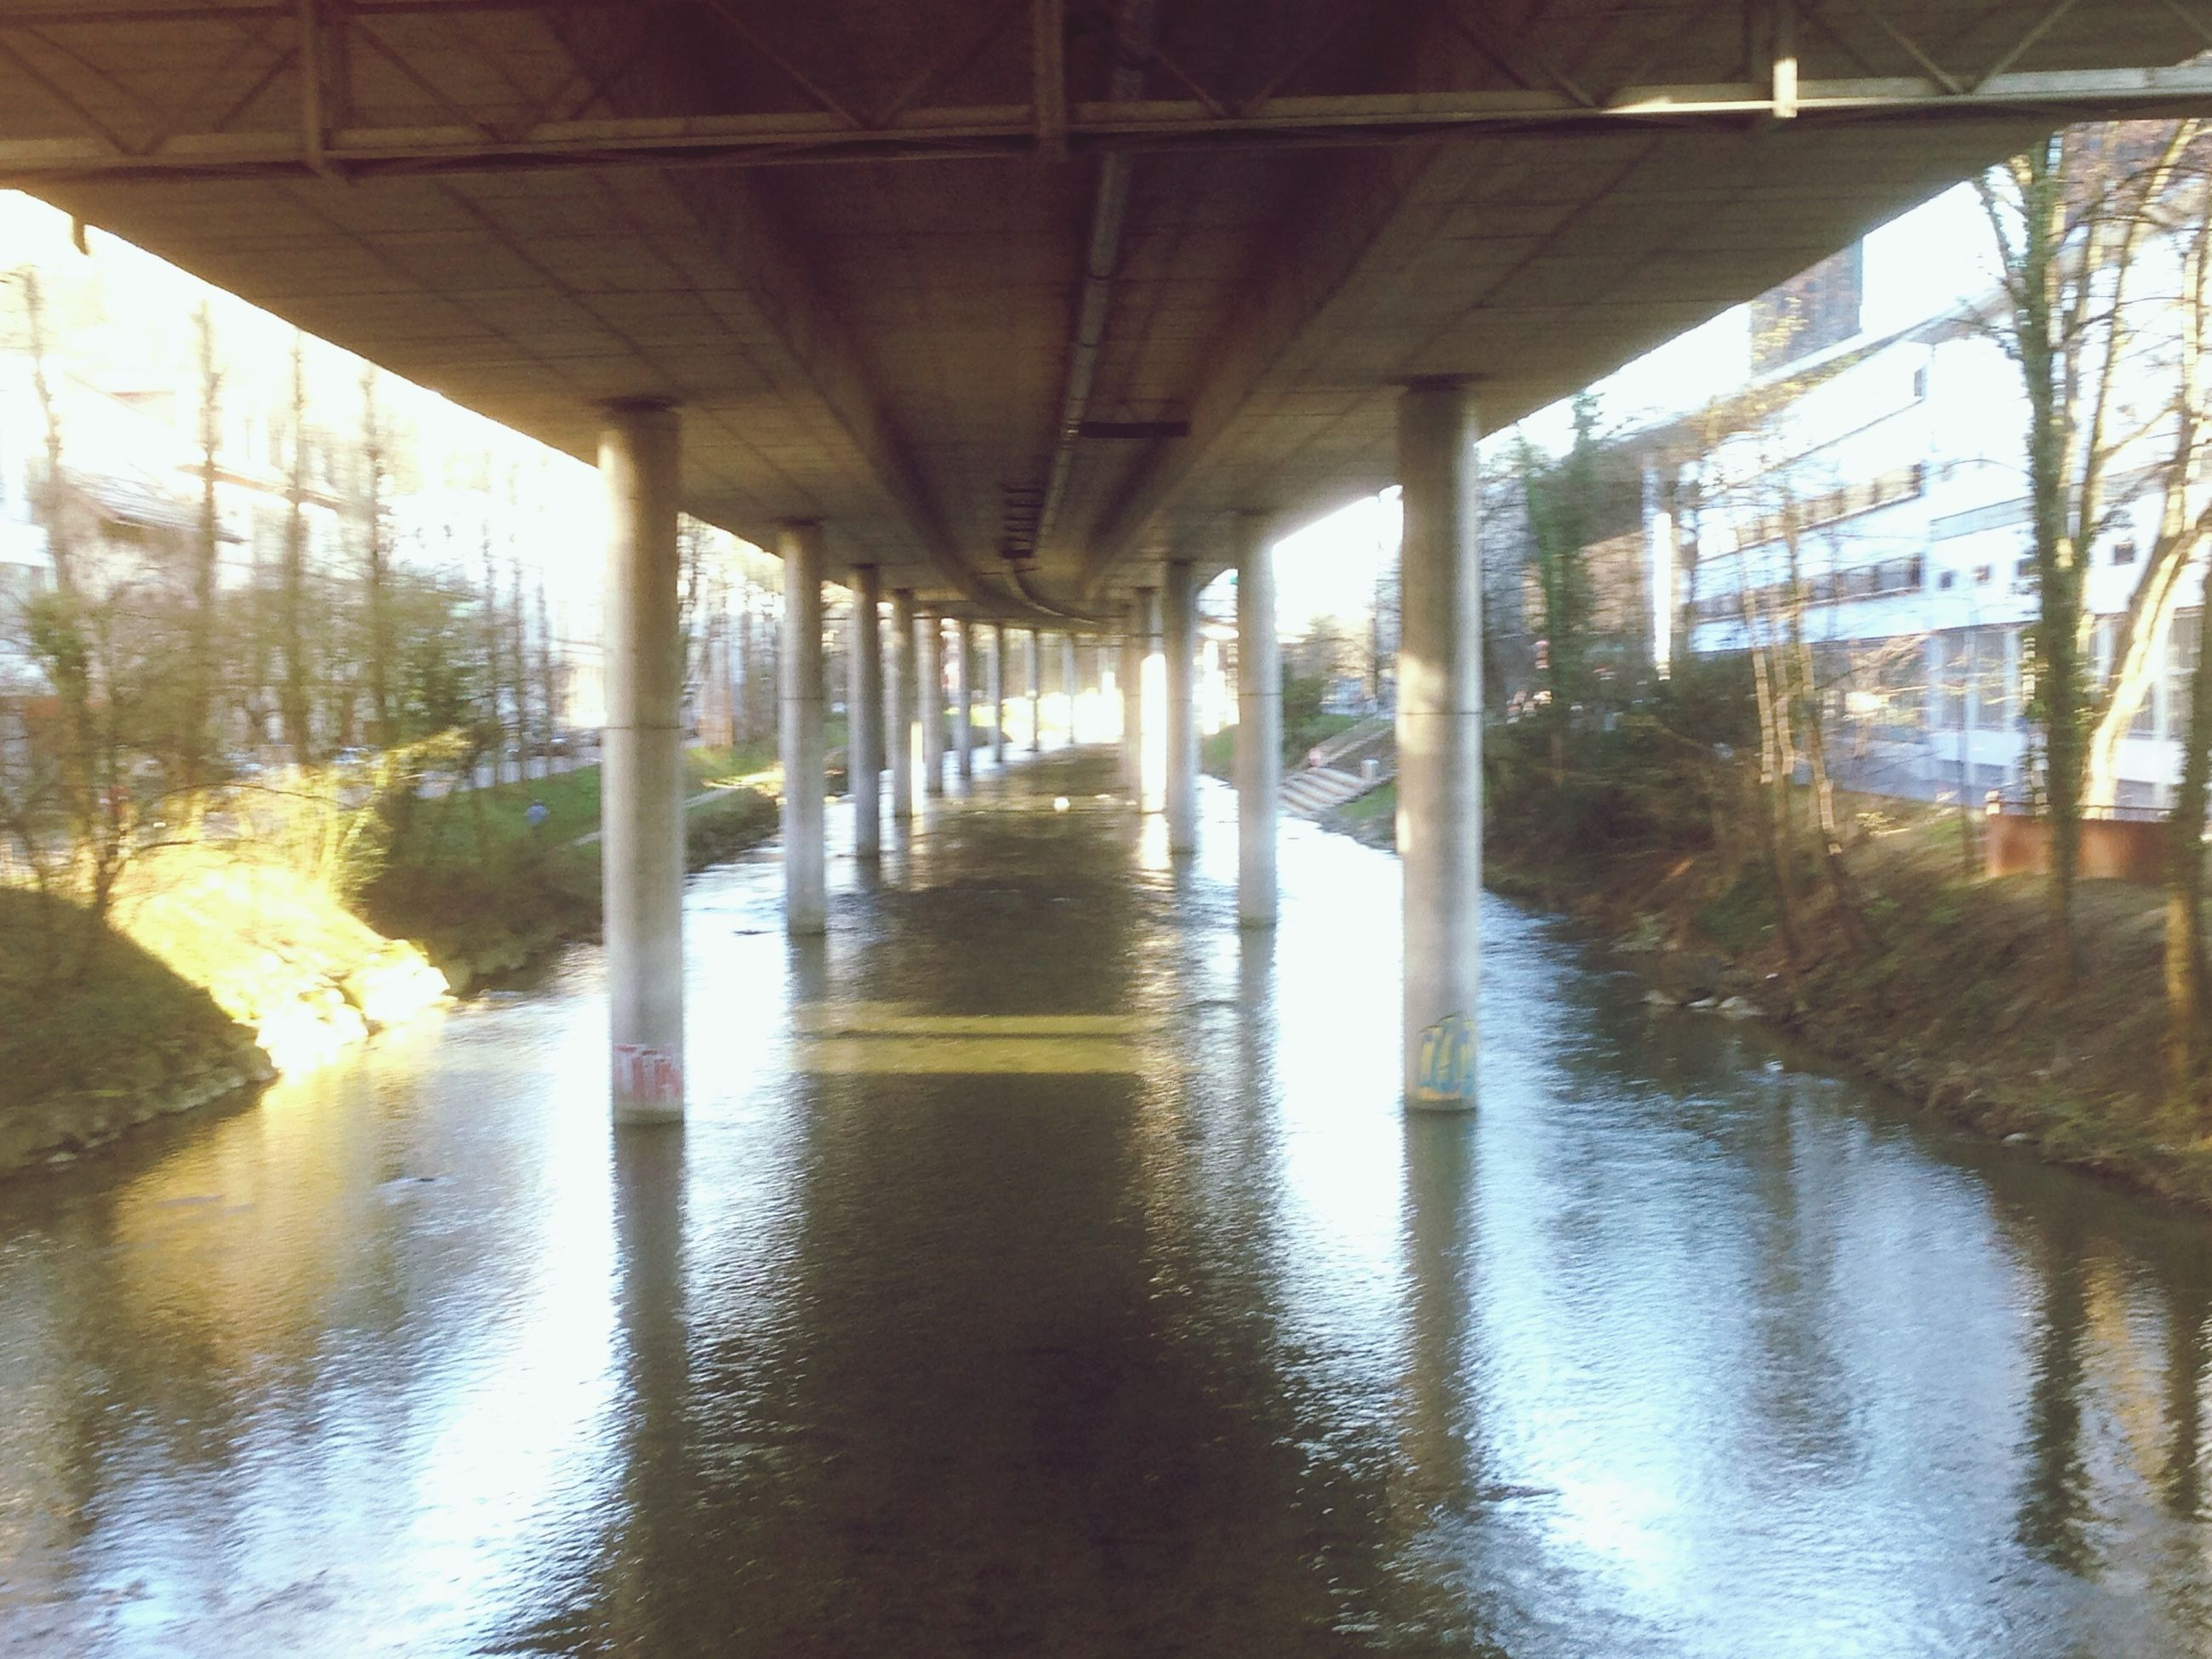 built structure, architecture, water, reflection, indoors, architectural column, bridge - man made structure, connection, sunlight, window, no people, day, waterfront, column, support, glass - material, below, nature, diminishing perspective, river